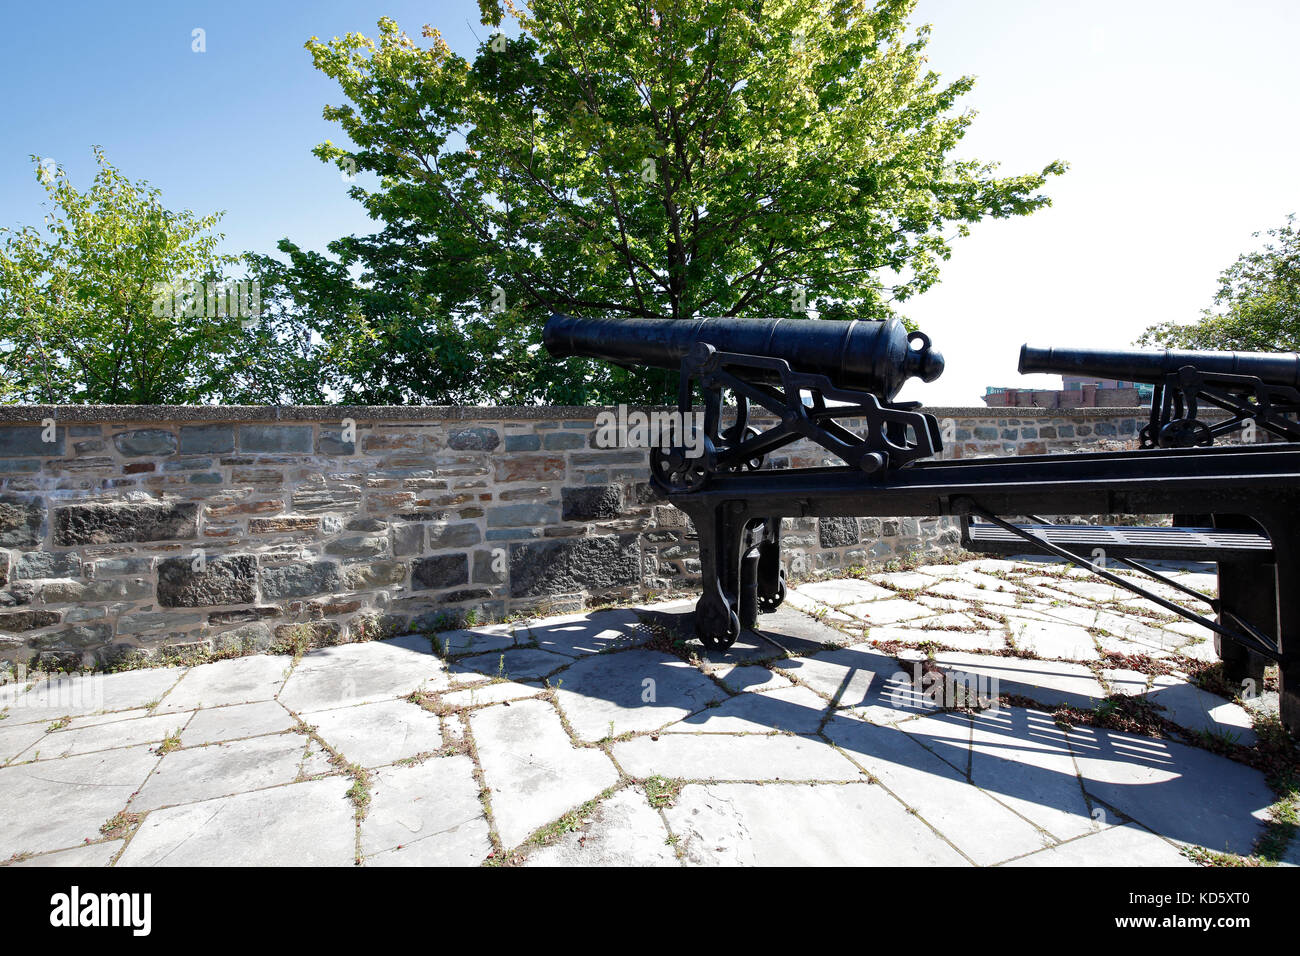 Cannons on defensive city walls in Quebec City, Canada - Stock Image